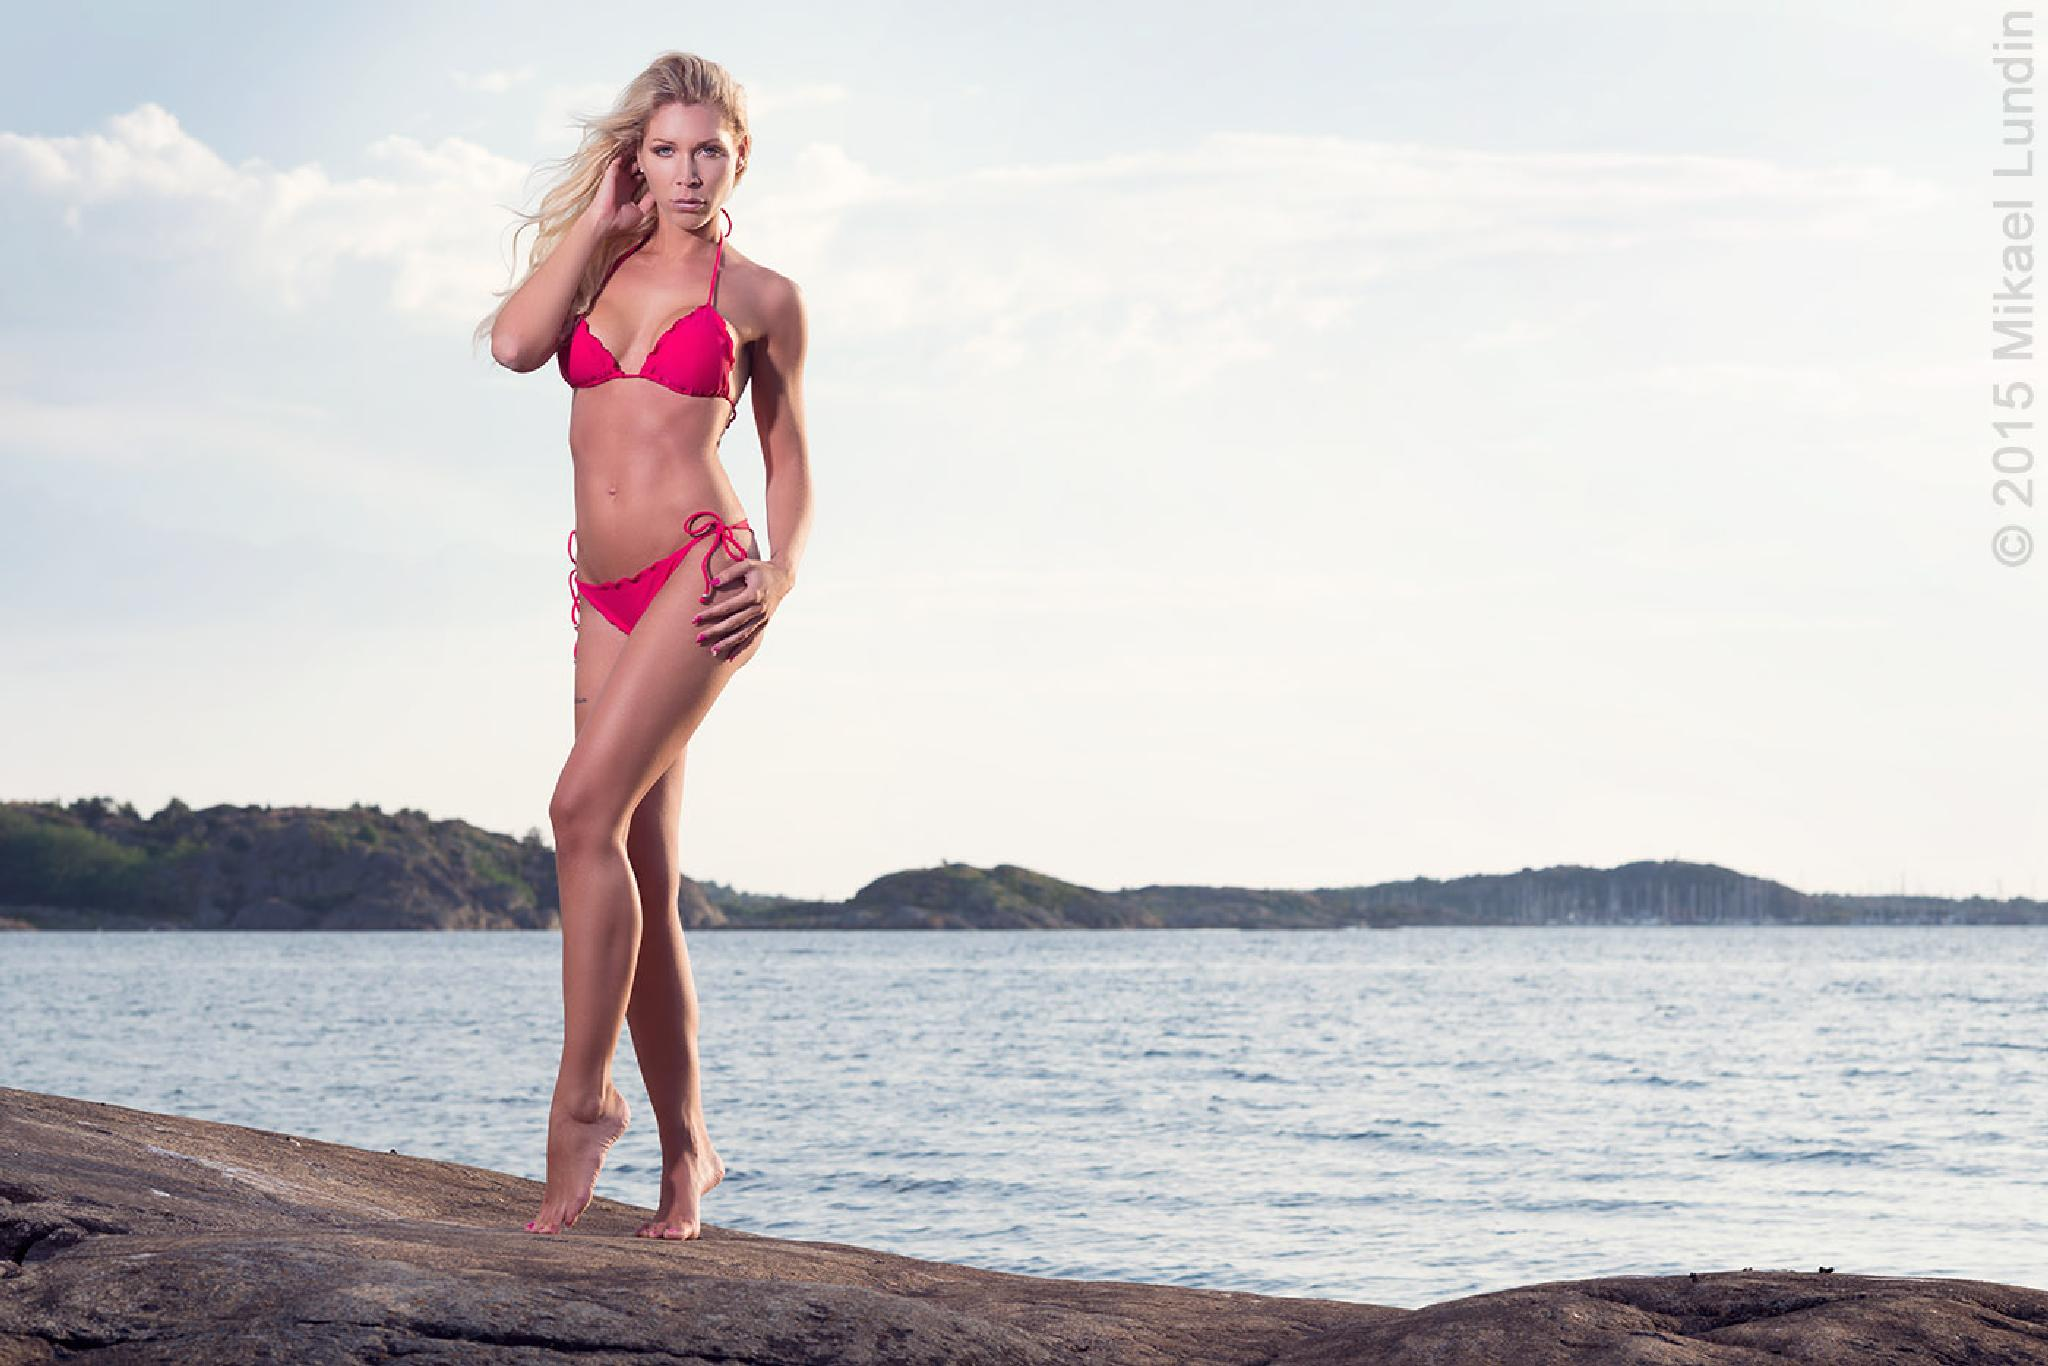 Swedish summer bikini by Mikael Lundin